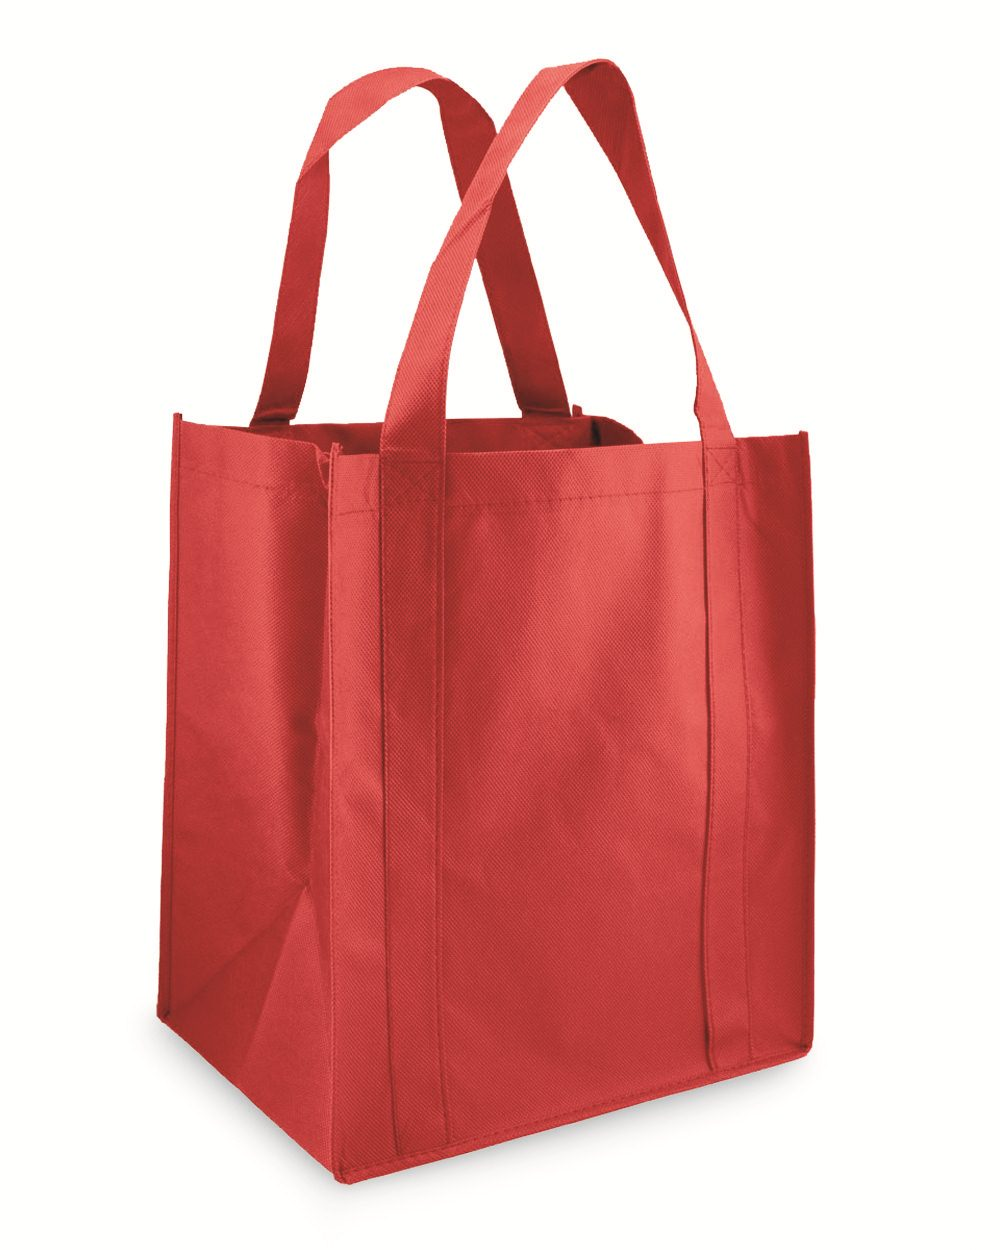 Valubag Non-Woven Large Shopping Bag - VB0912 $1.62 - Bags